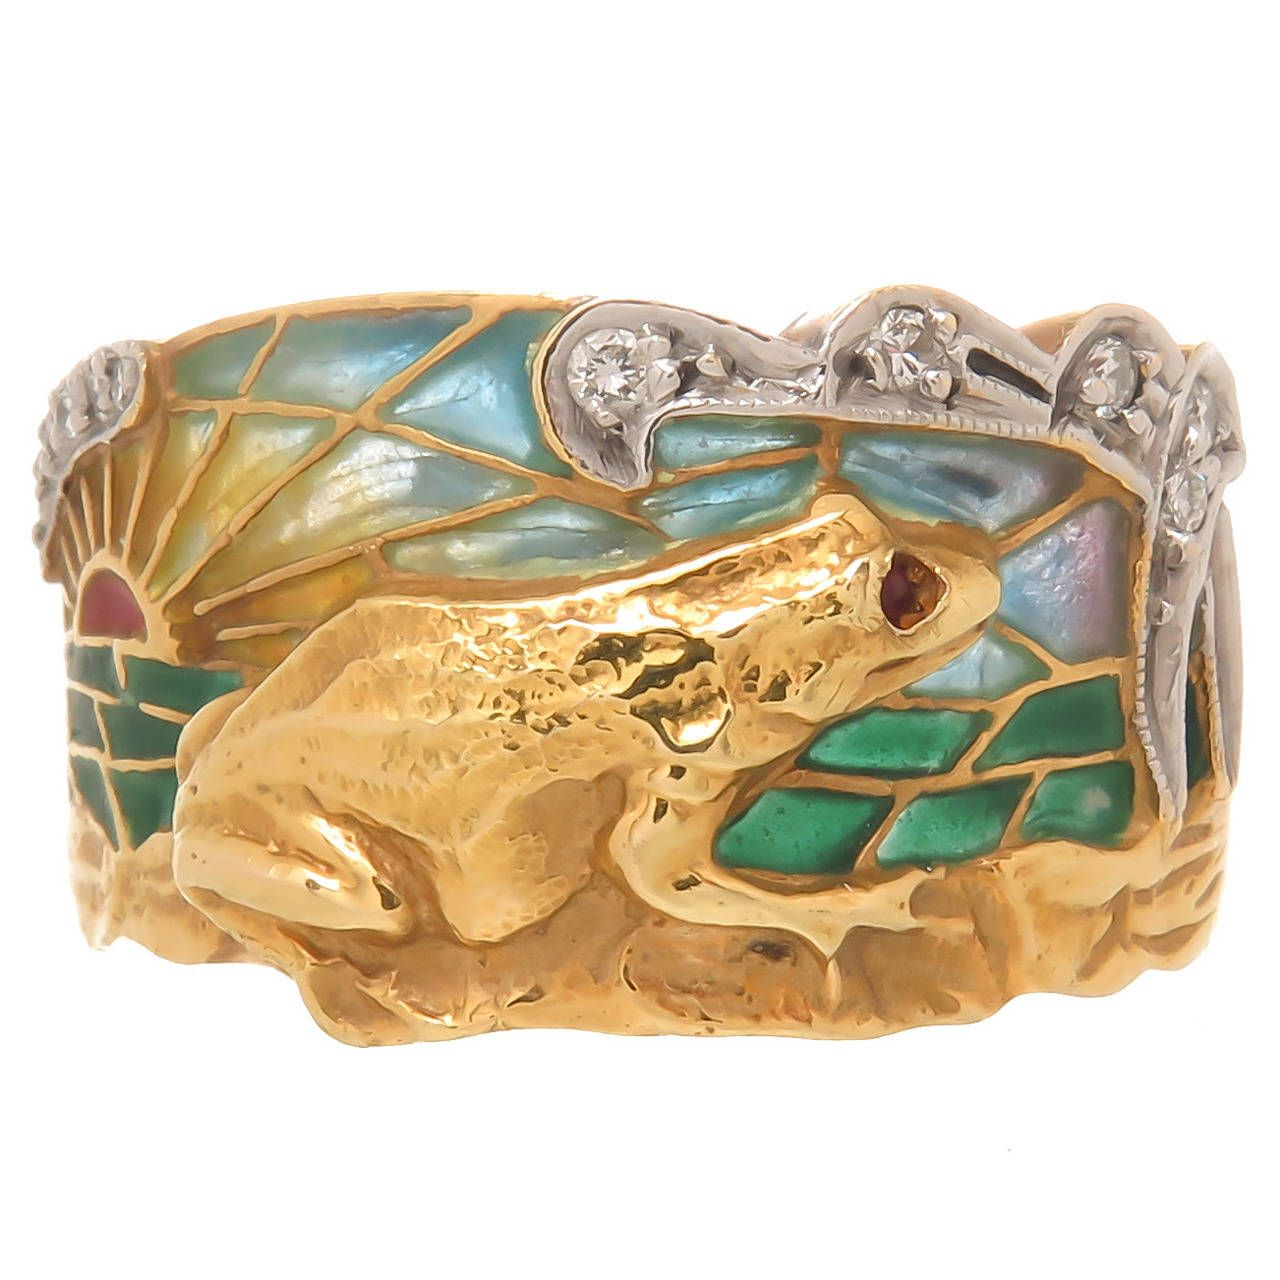 Masriera Plique-a-Jour Enamel Gold Frog Ring | From a unique collection of vintage cocktail rings at https://www.1stdibs.com/jewelry/rings/cocktail-rings/